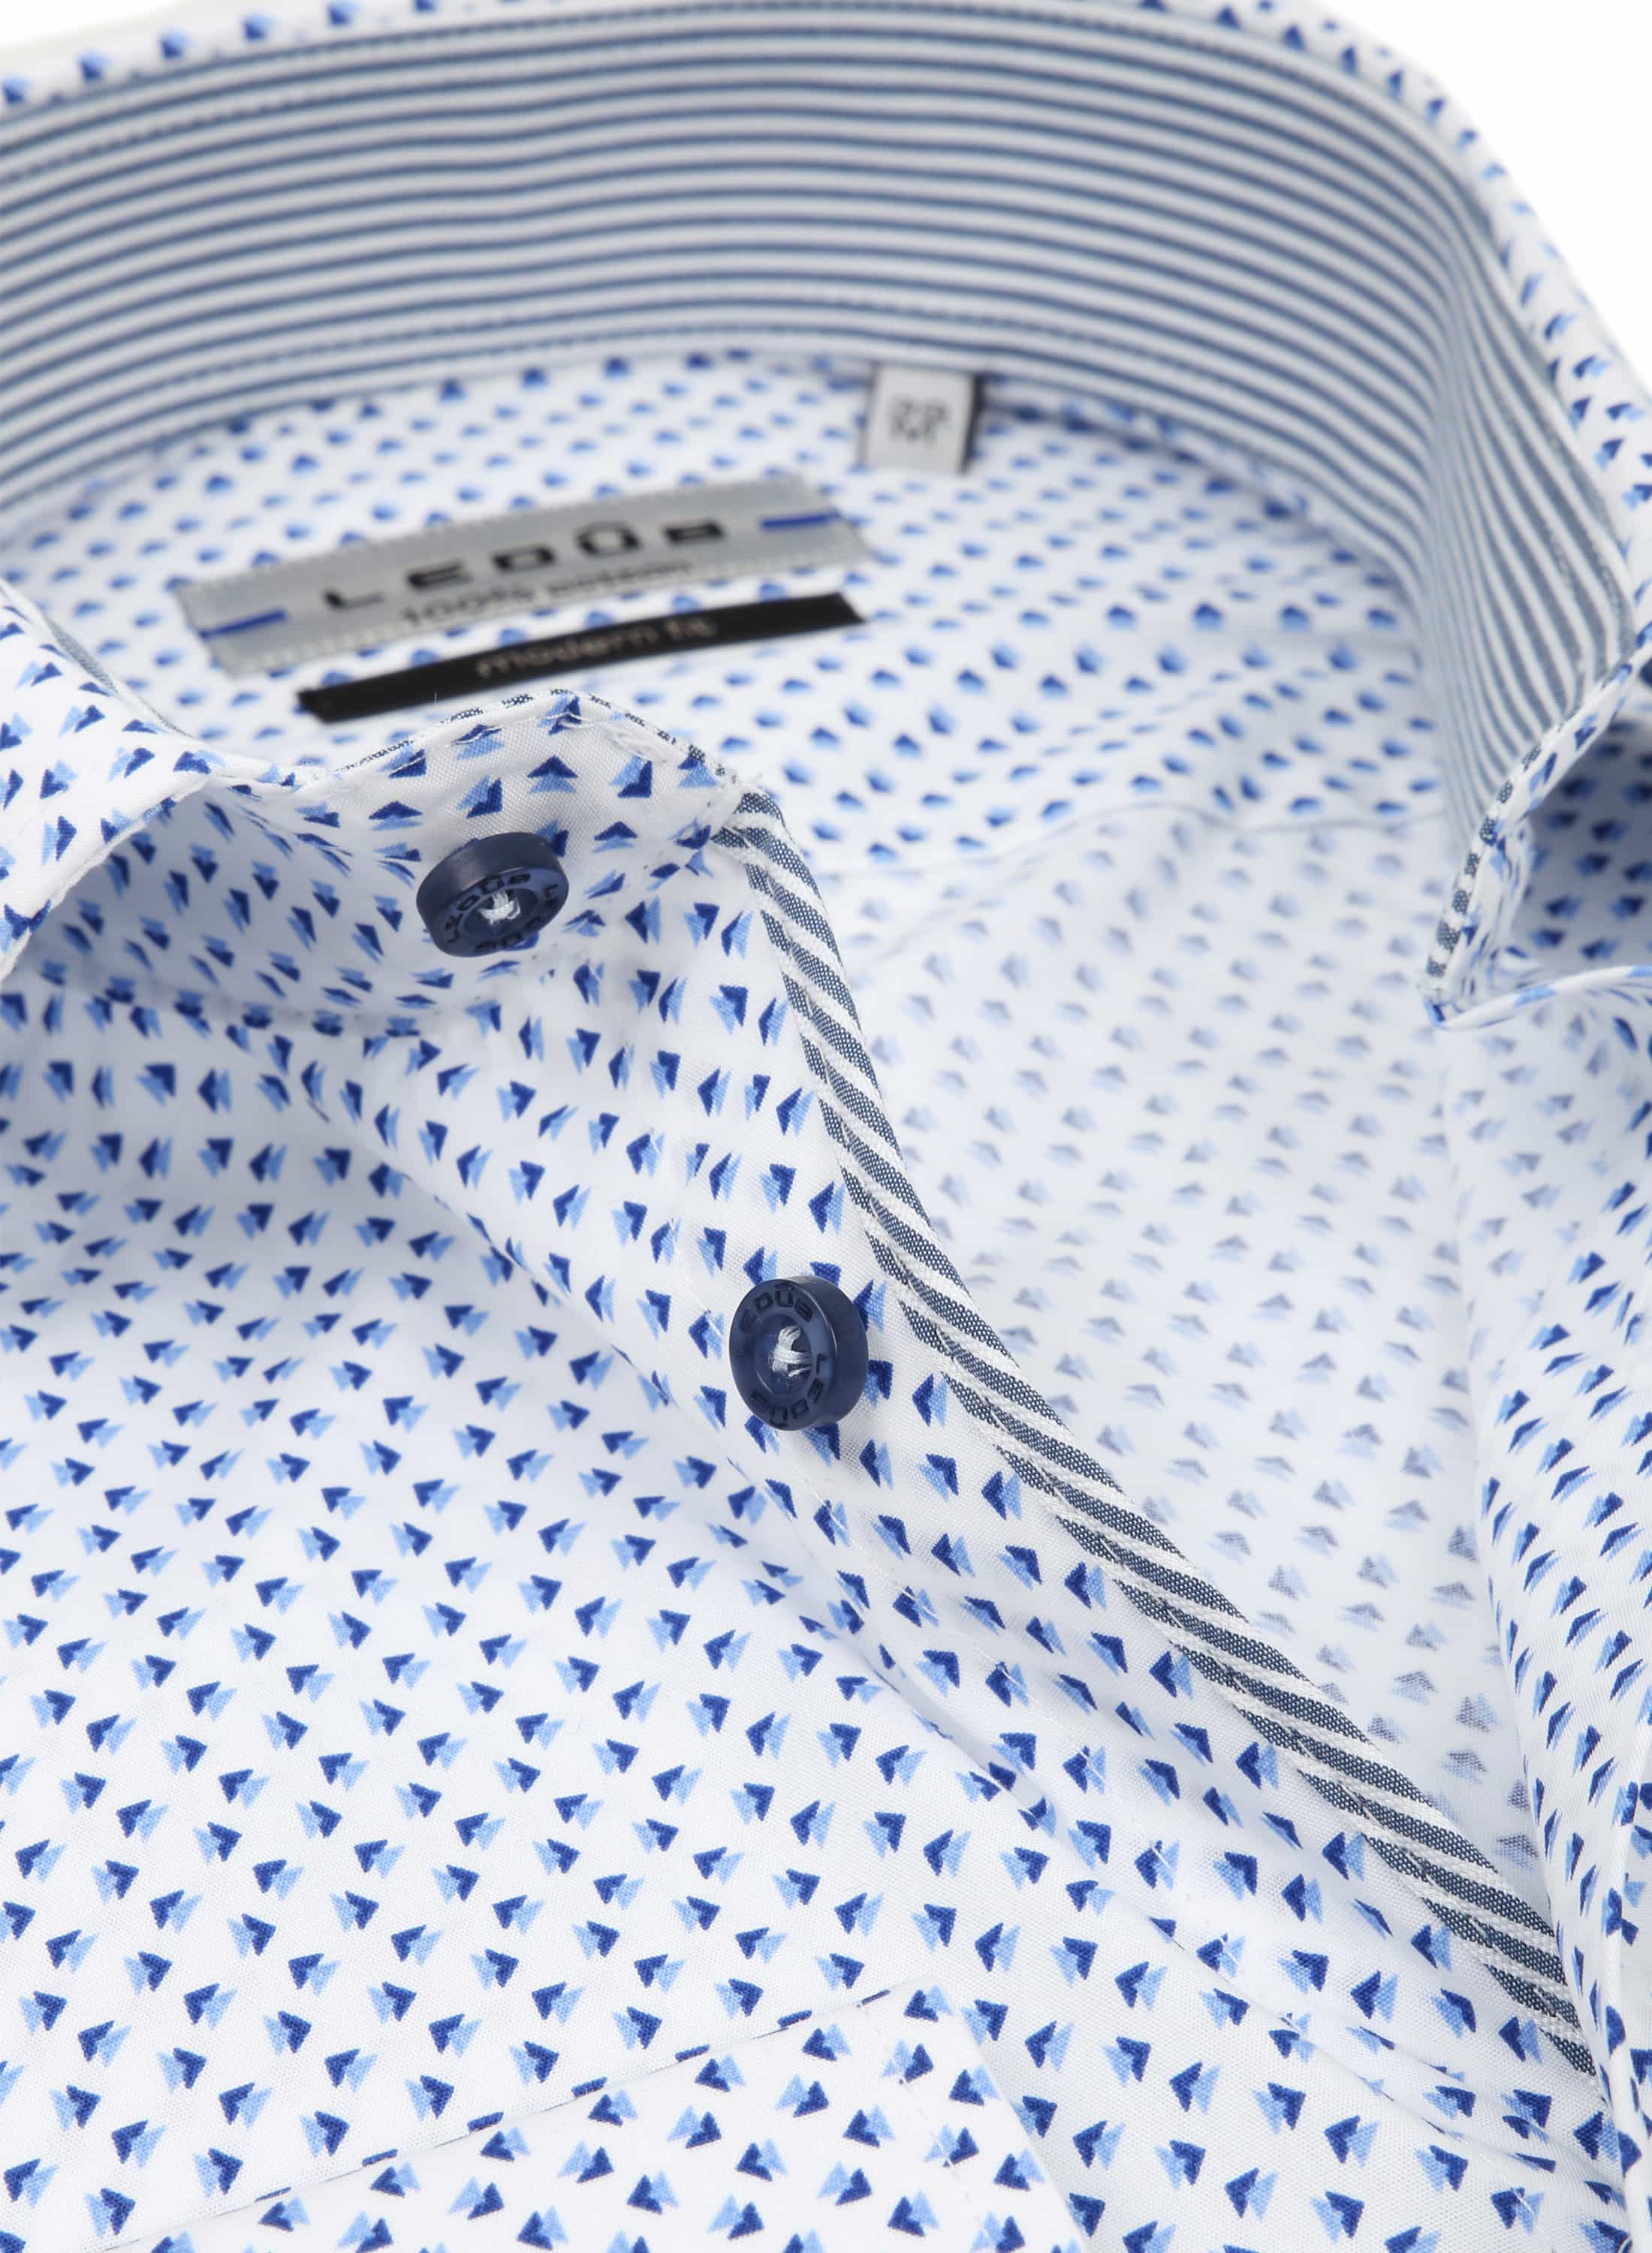 Ledub Shirt Pattern Design Blue foto 1